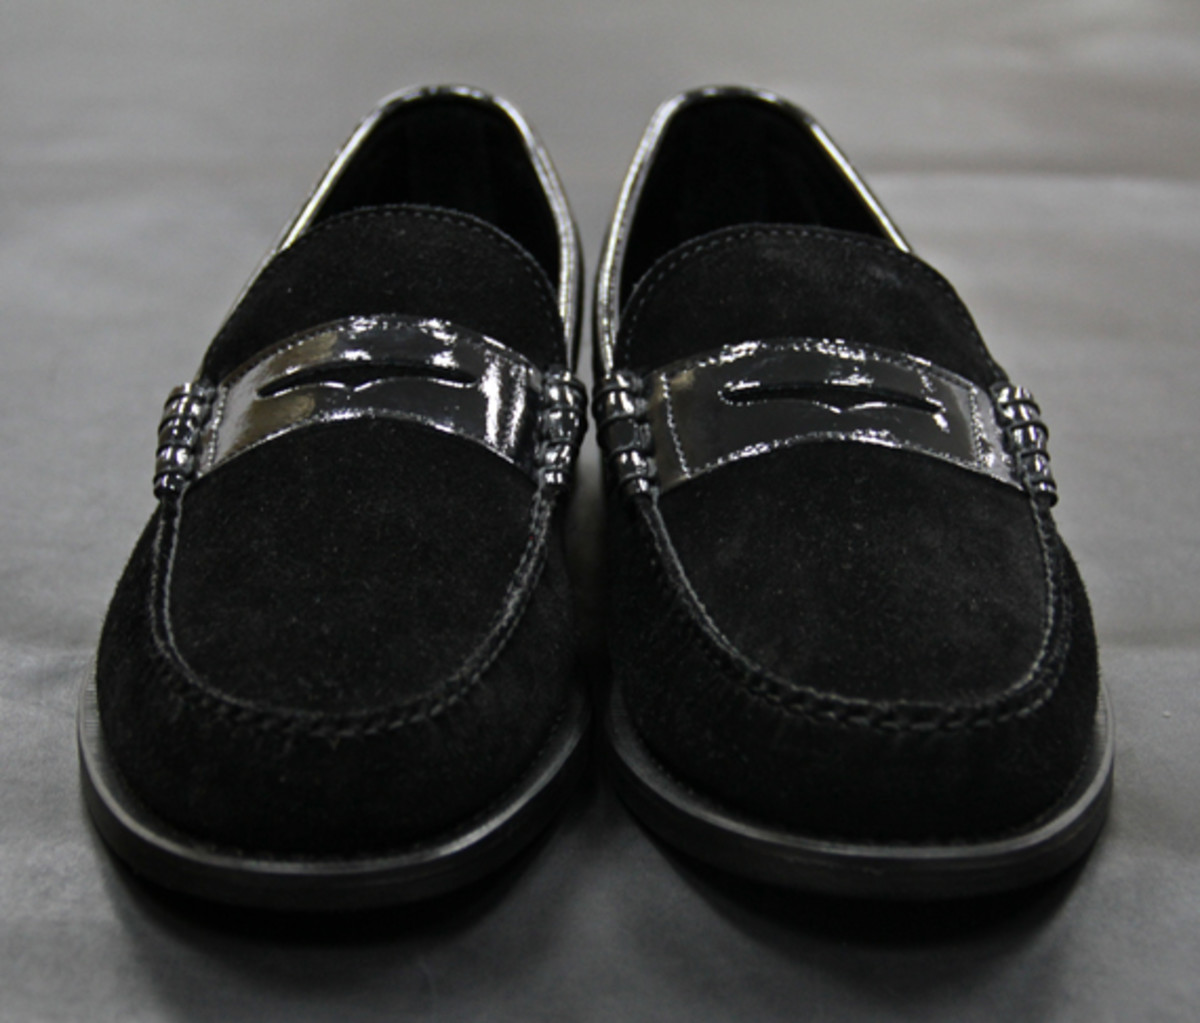 ronnie-fieg-theophilus-london-sebago-triple-black-penny-loafer-01